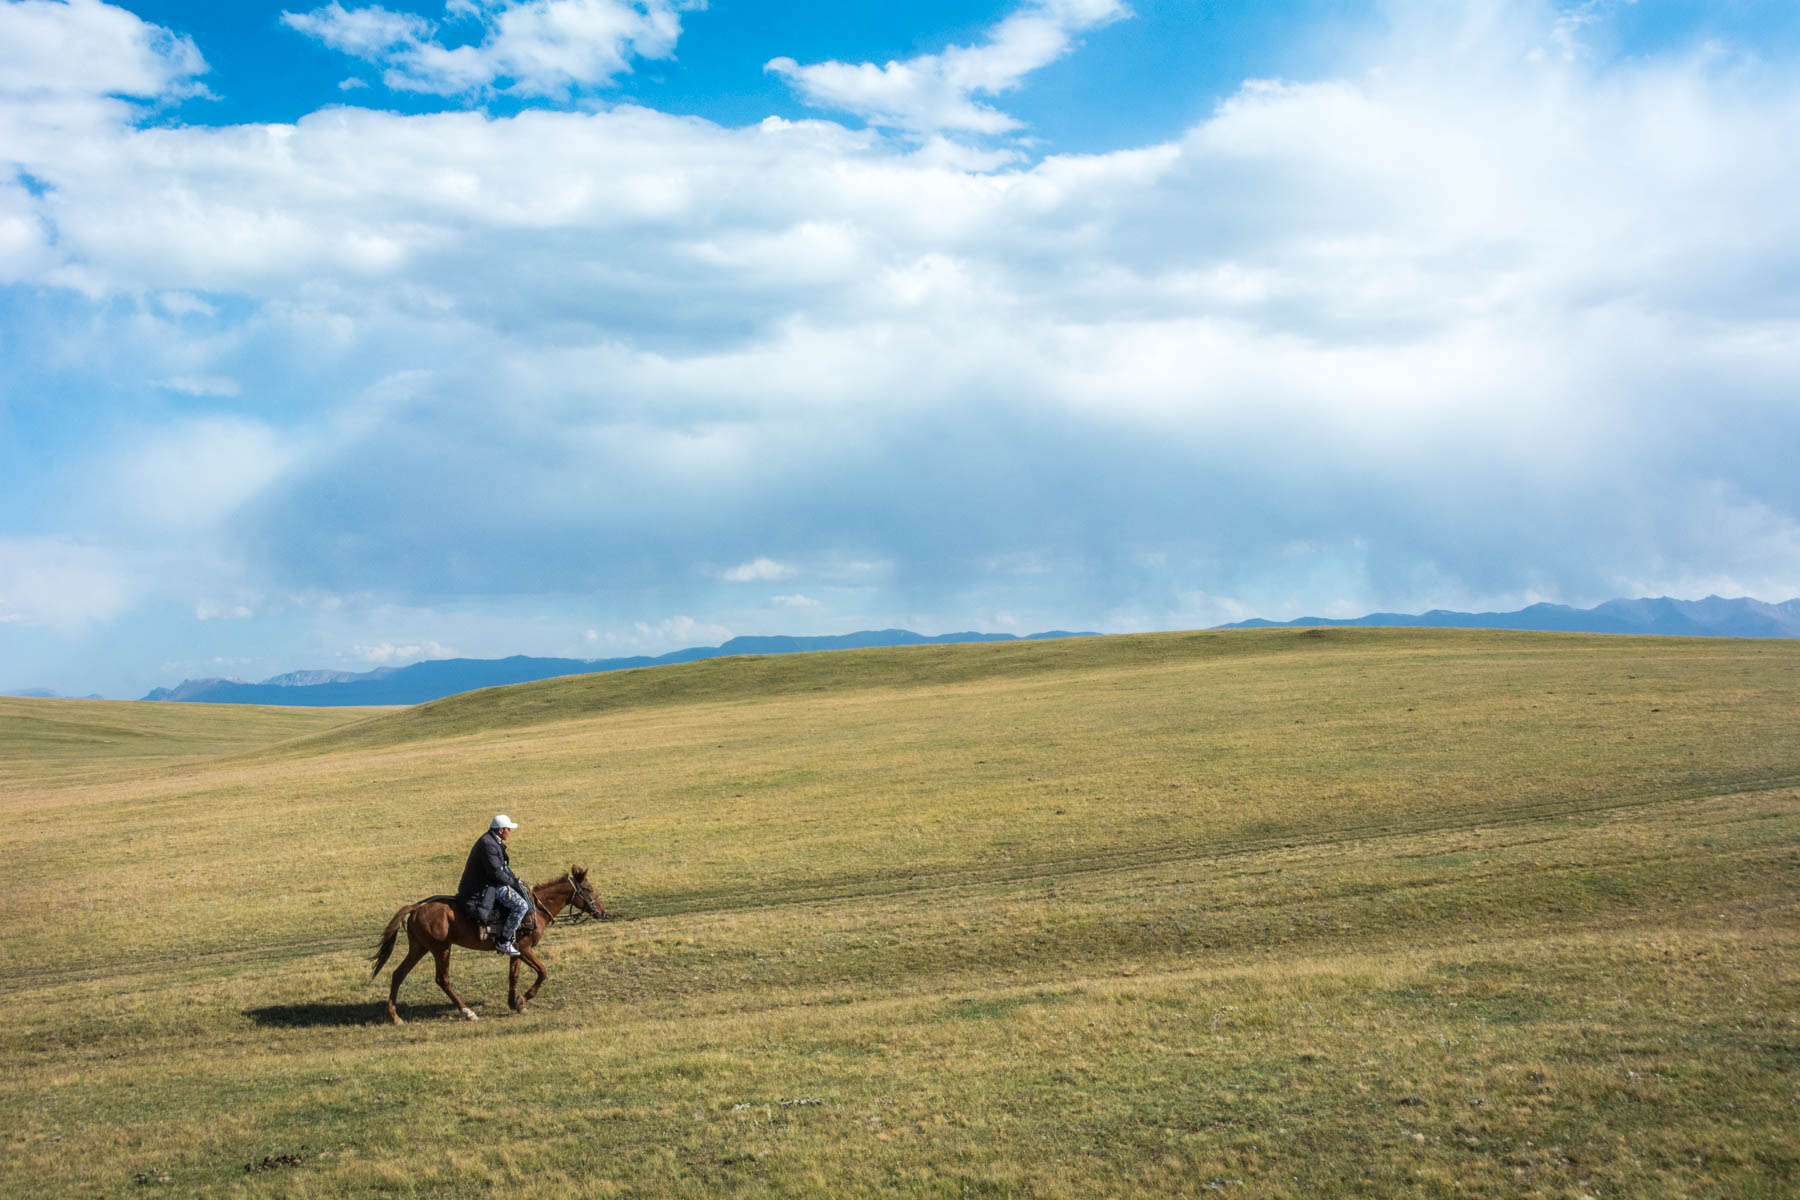 Horse guide riding through the steppe at Song Kul lake in Kyrgyzstan - Lost With Purpose